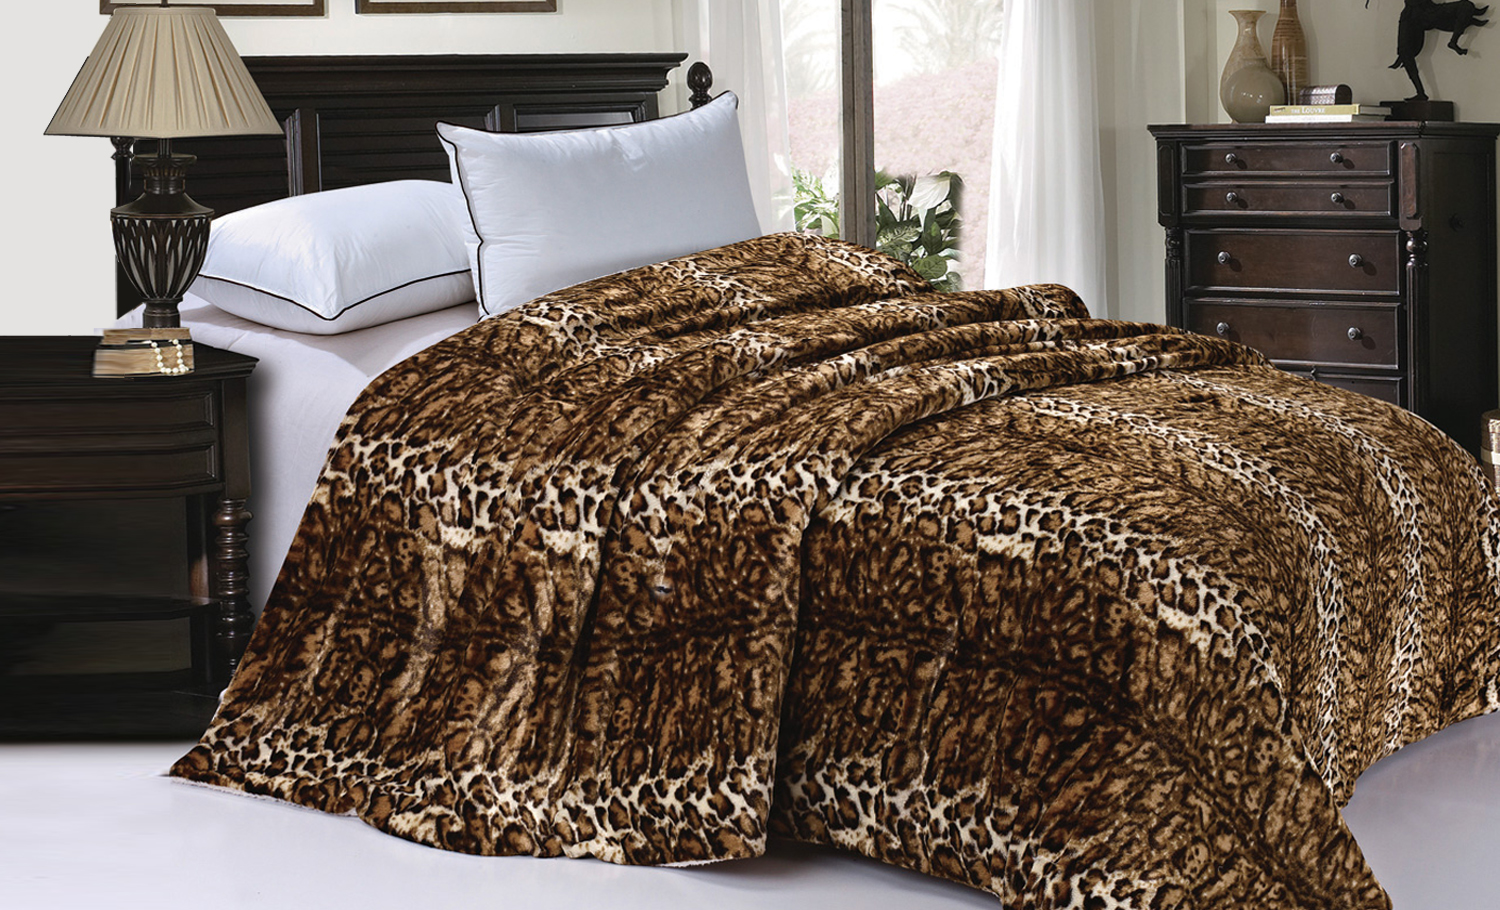 The Ultimate Animal Faux Fur blanket